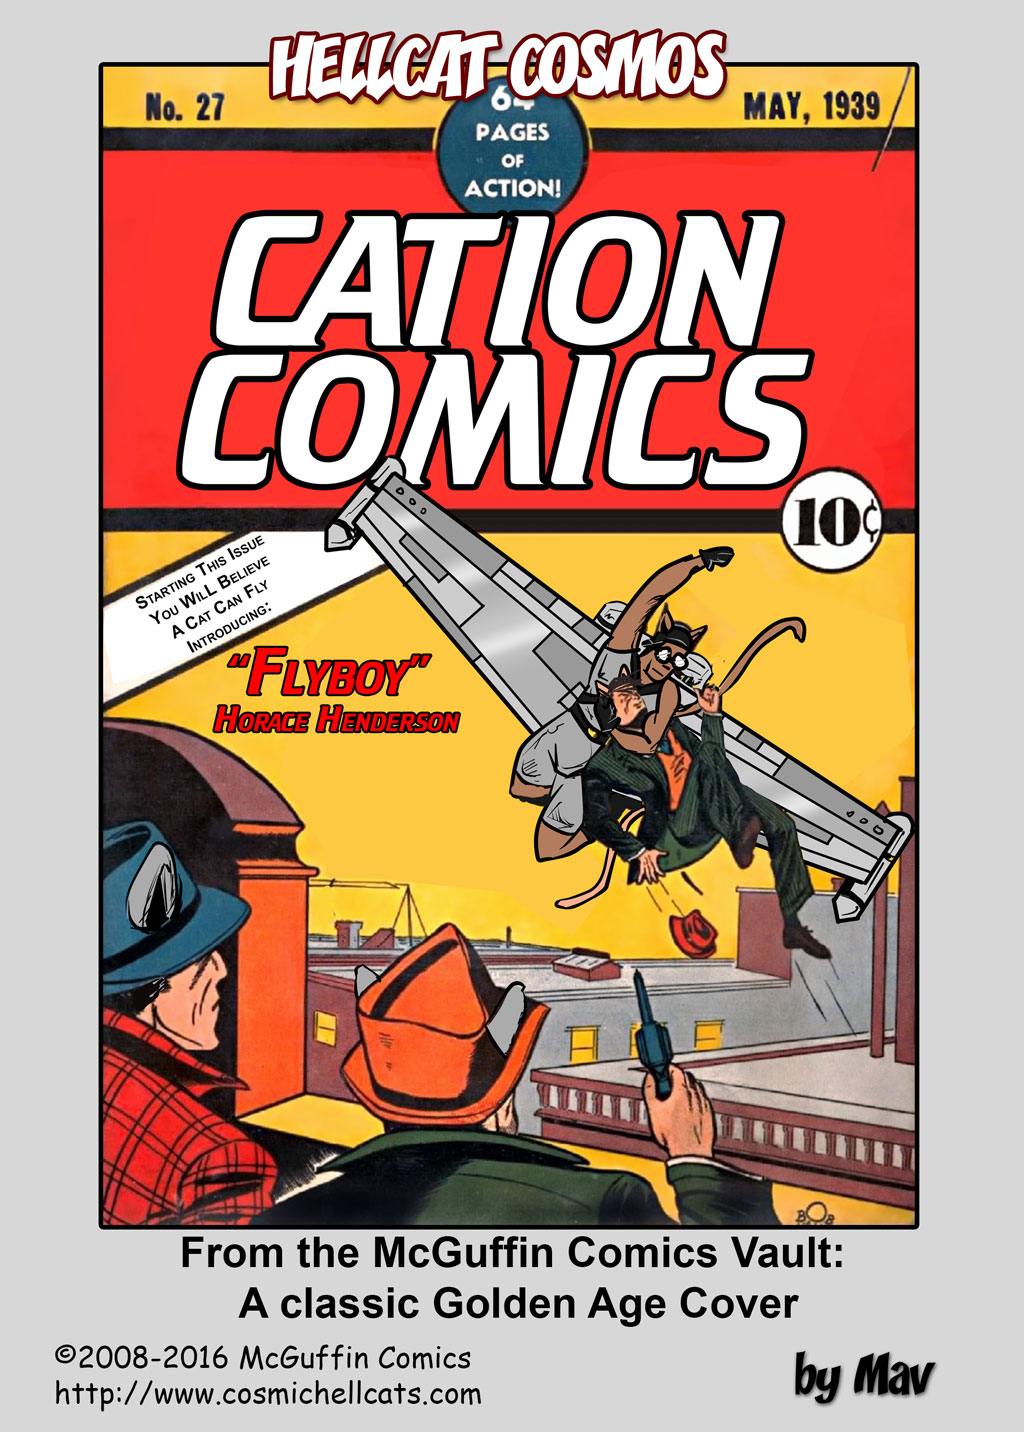 From the McGuffin Comics Vault: 1939